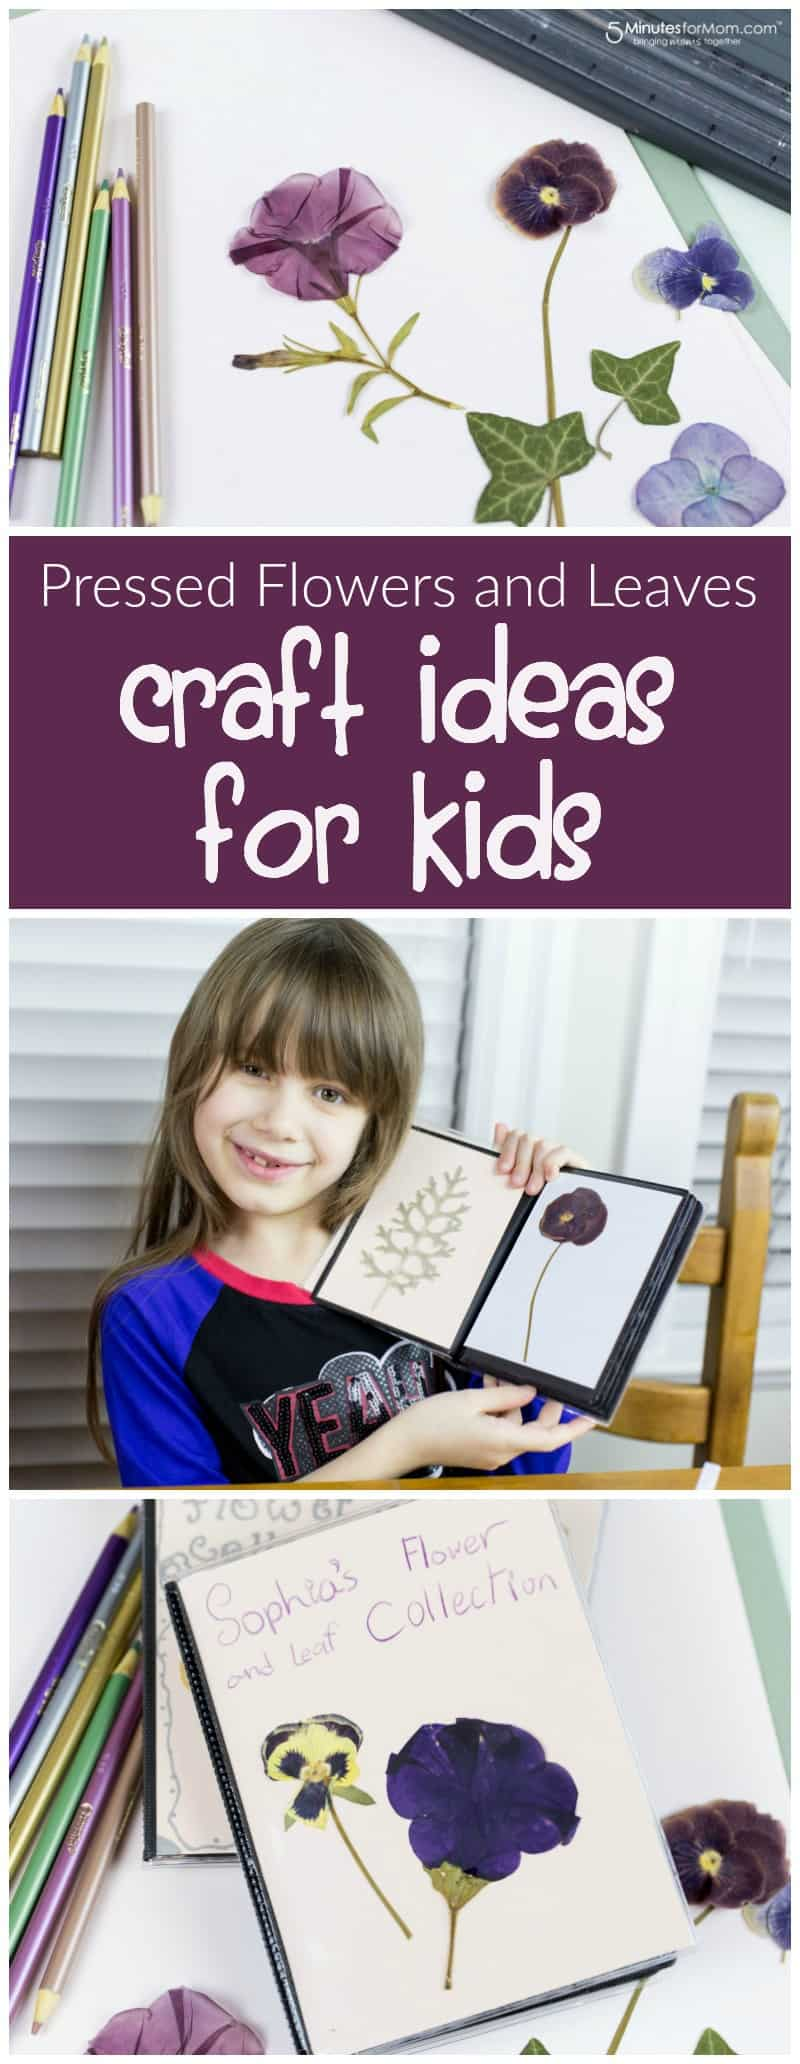 Pressed flowers and leaves - Craft ideas for Kids